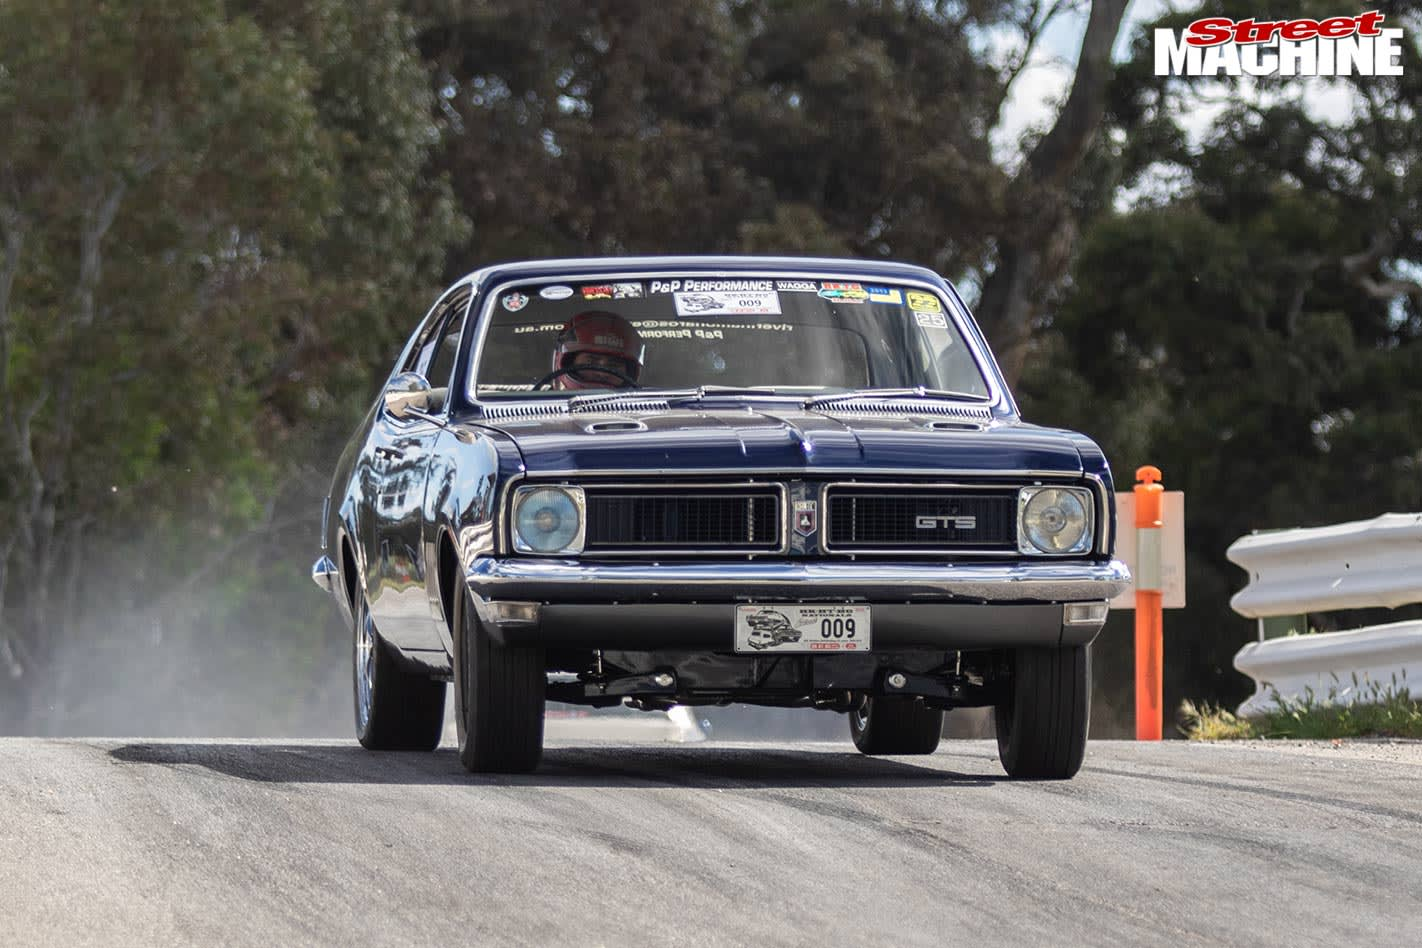 Holden HG GTS coupe